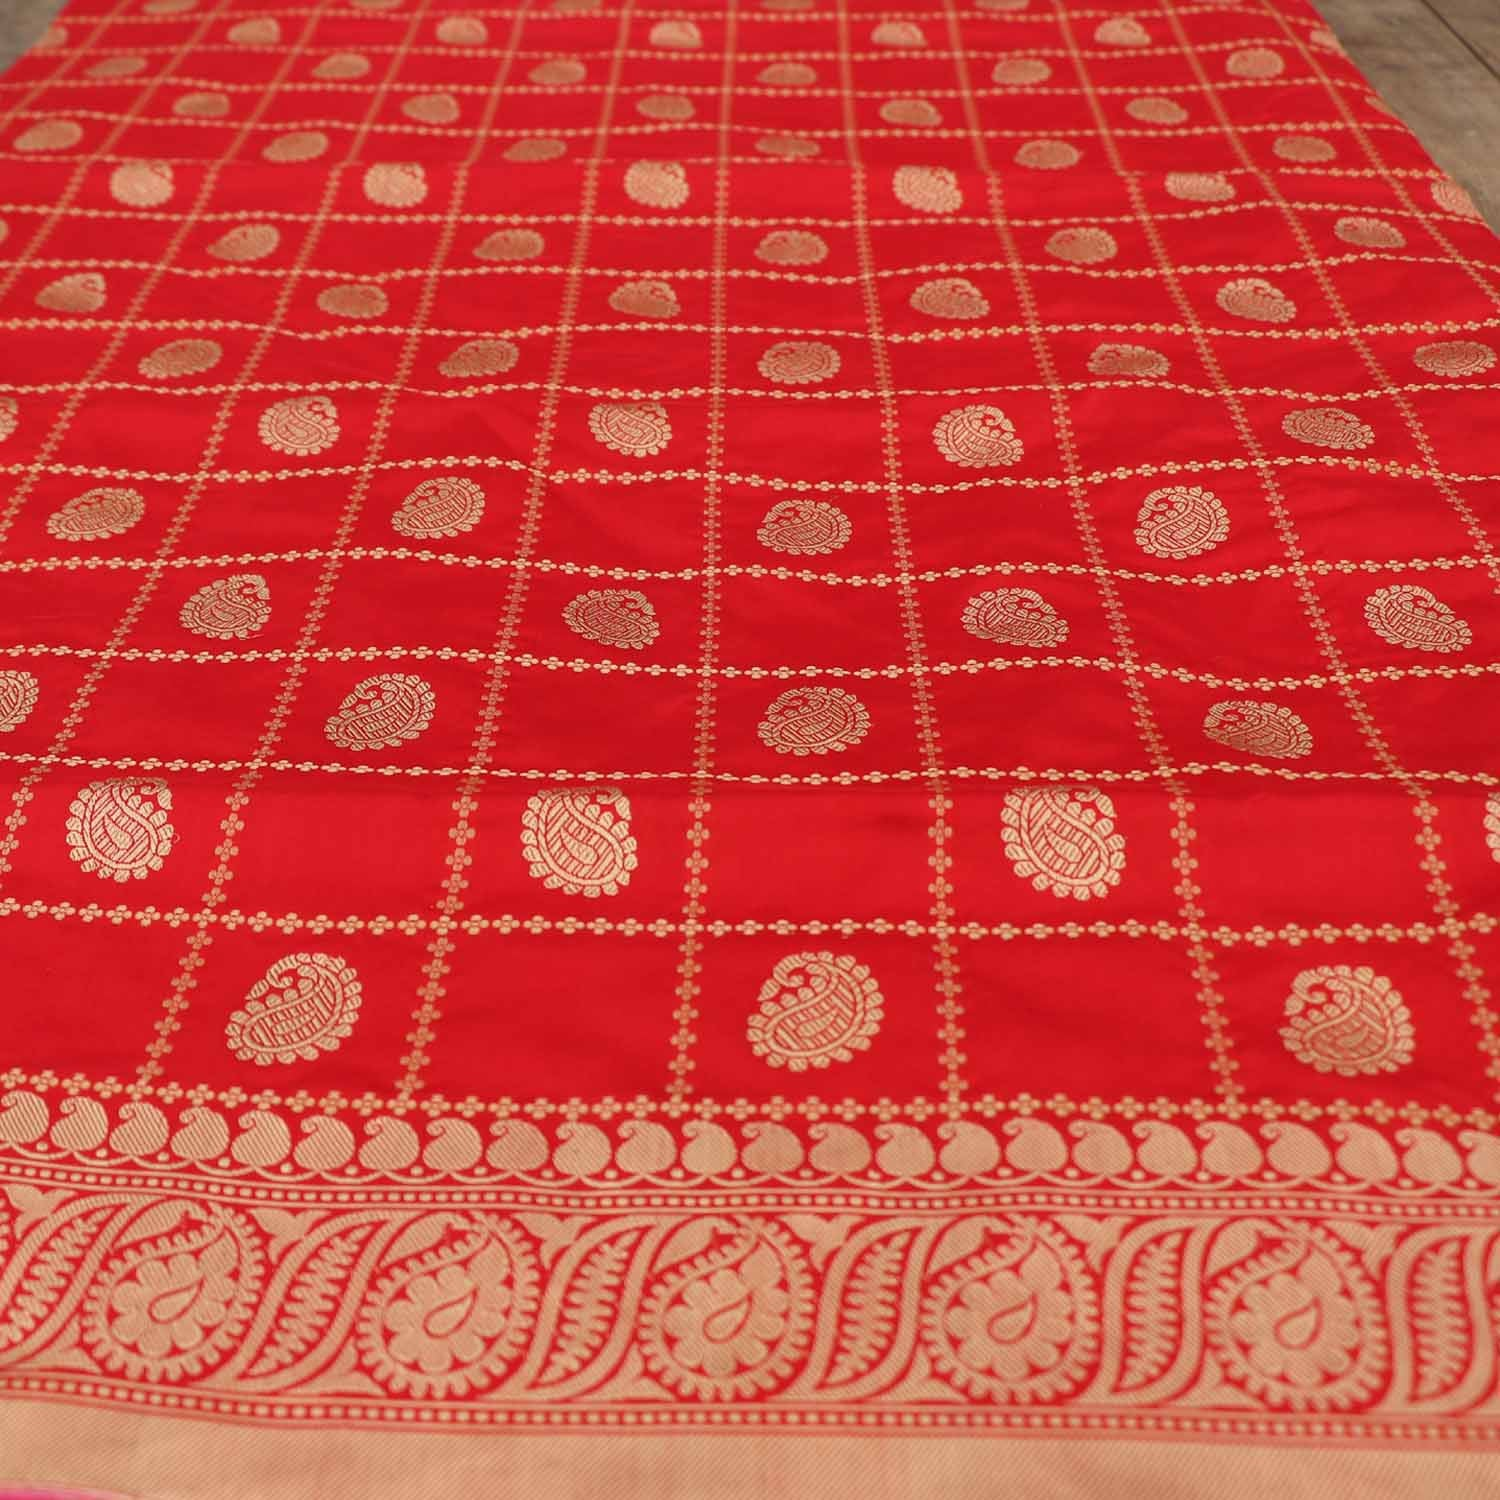 Red Pure Katan Silk Banarasi Handloom Saree - Tilfi